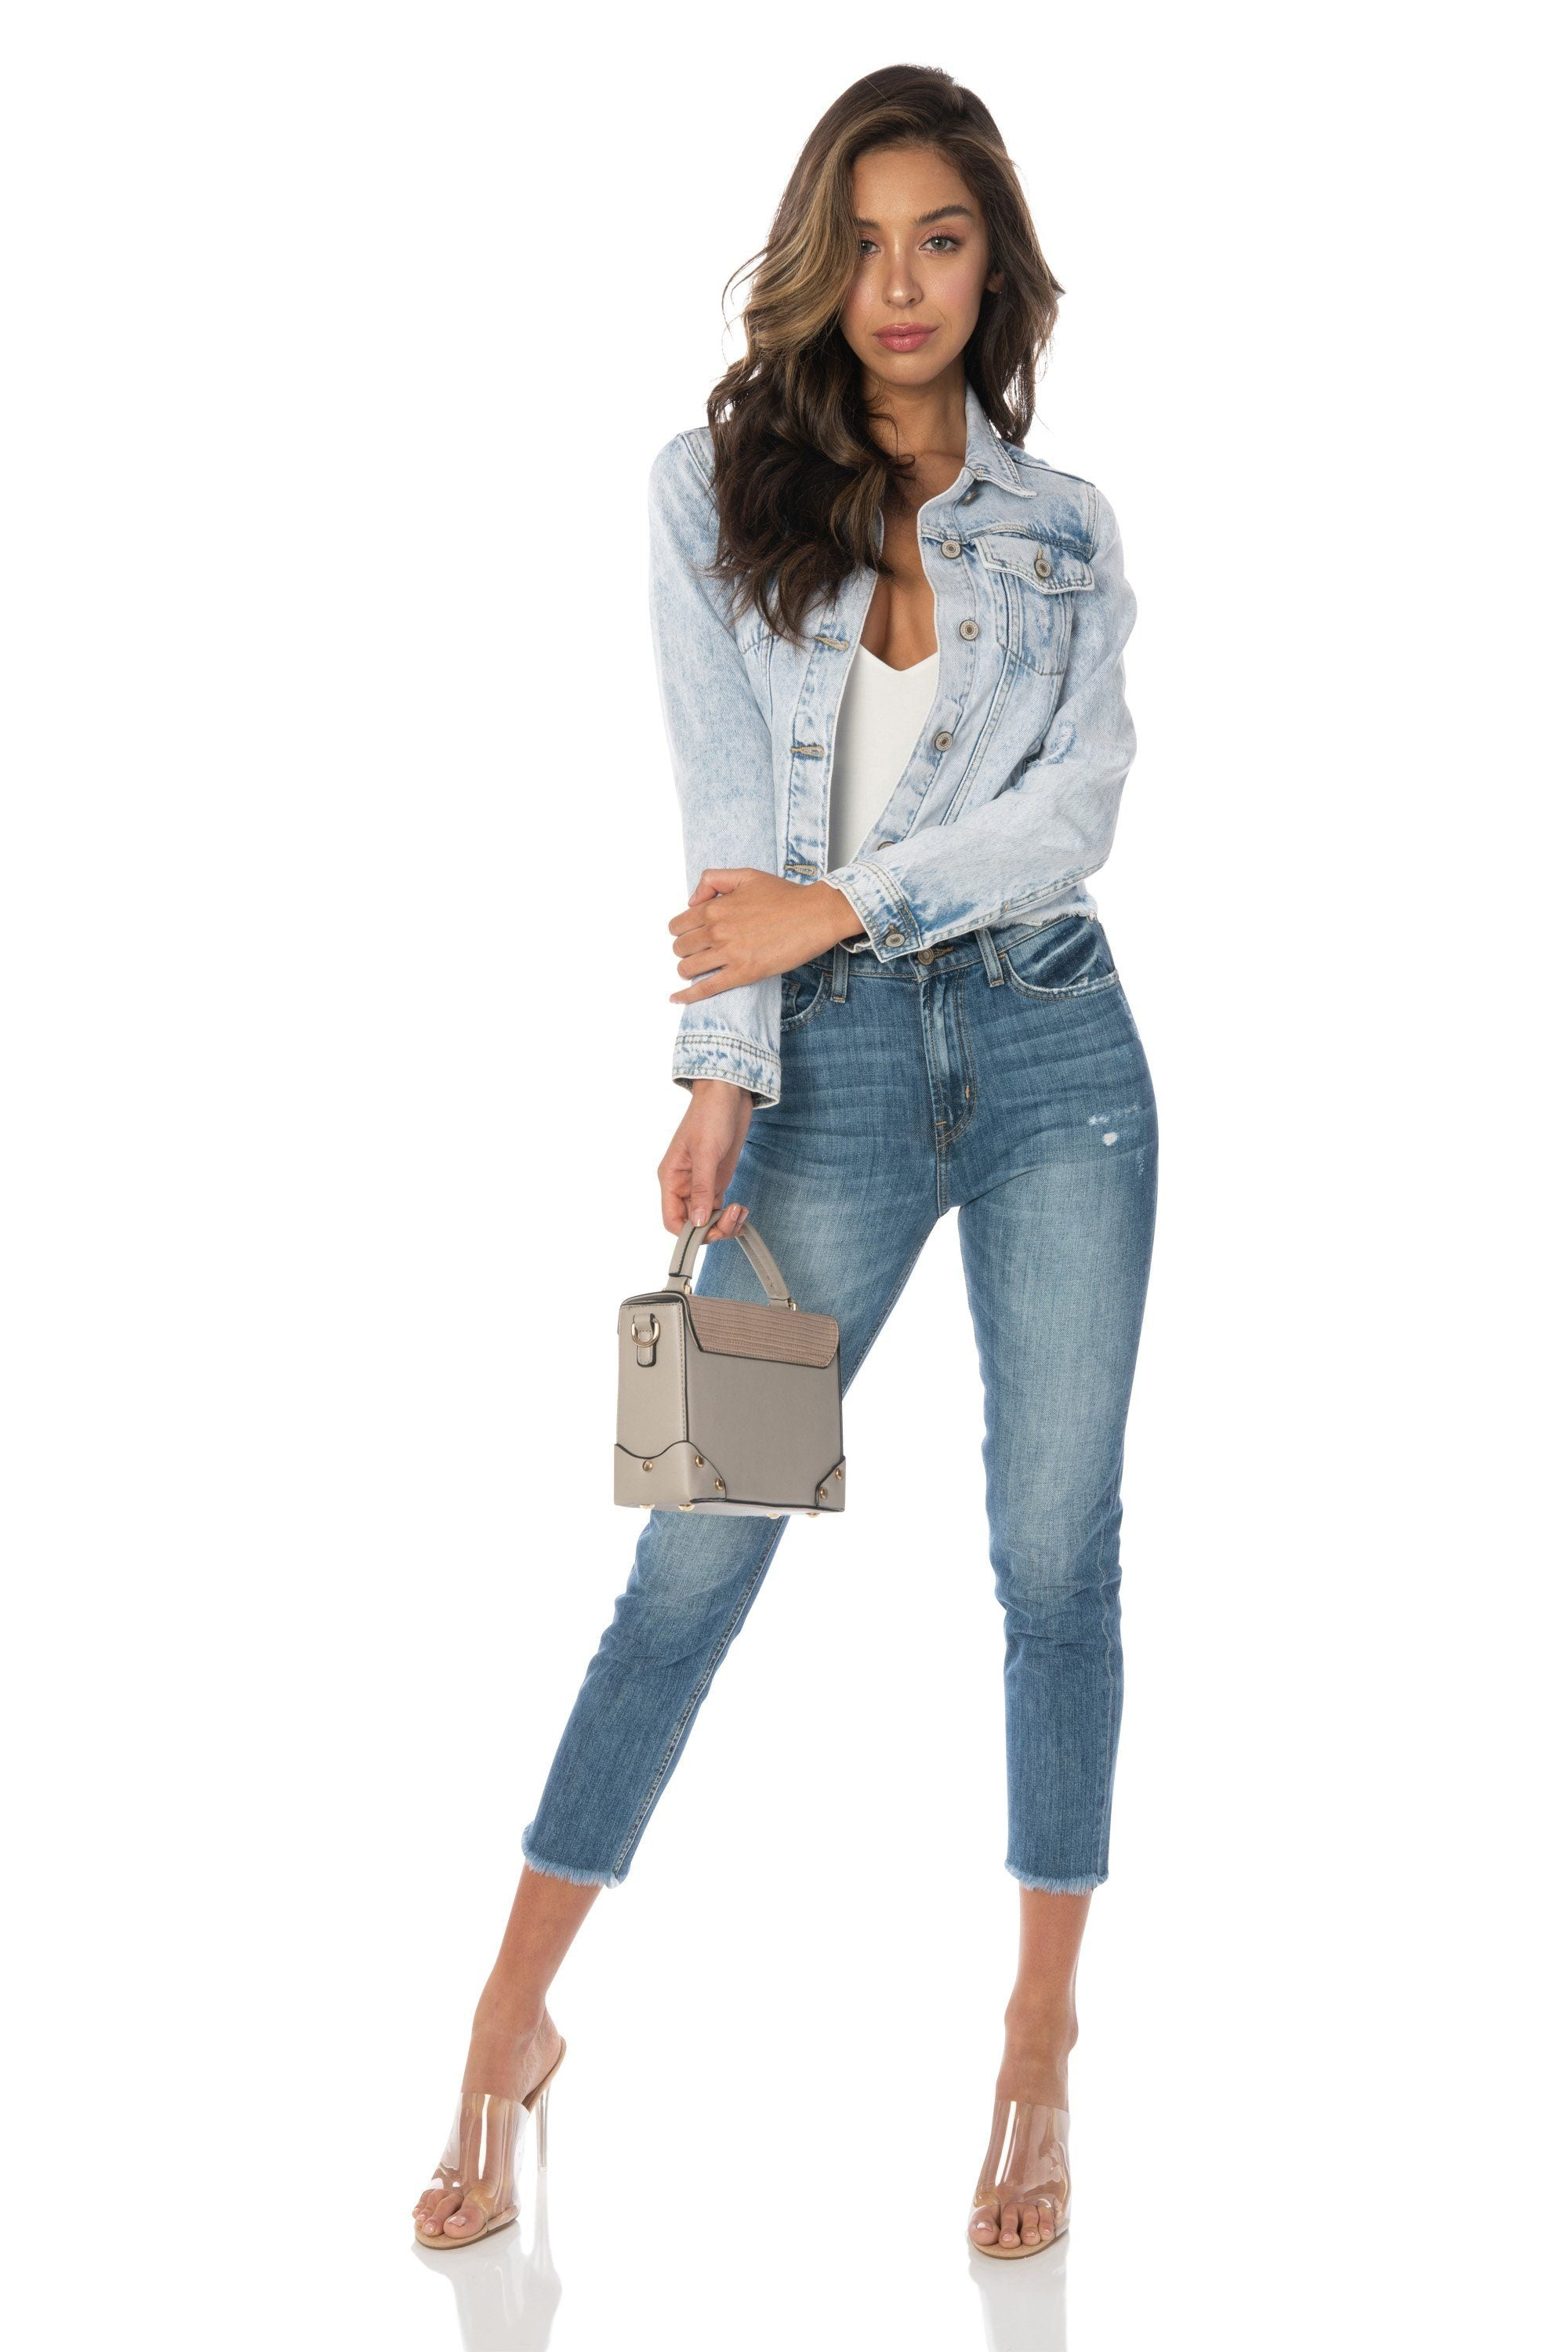 Kancan - Denim Jacket Light Wash with Frayed Hem Outerwear HYPEACH BOUTIQUE